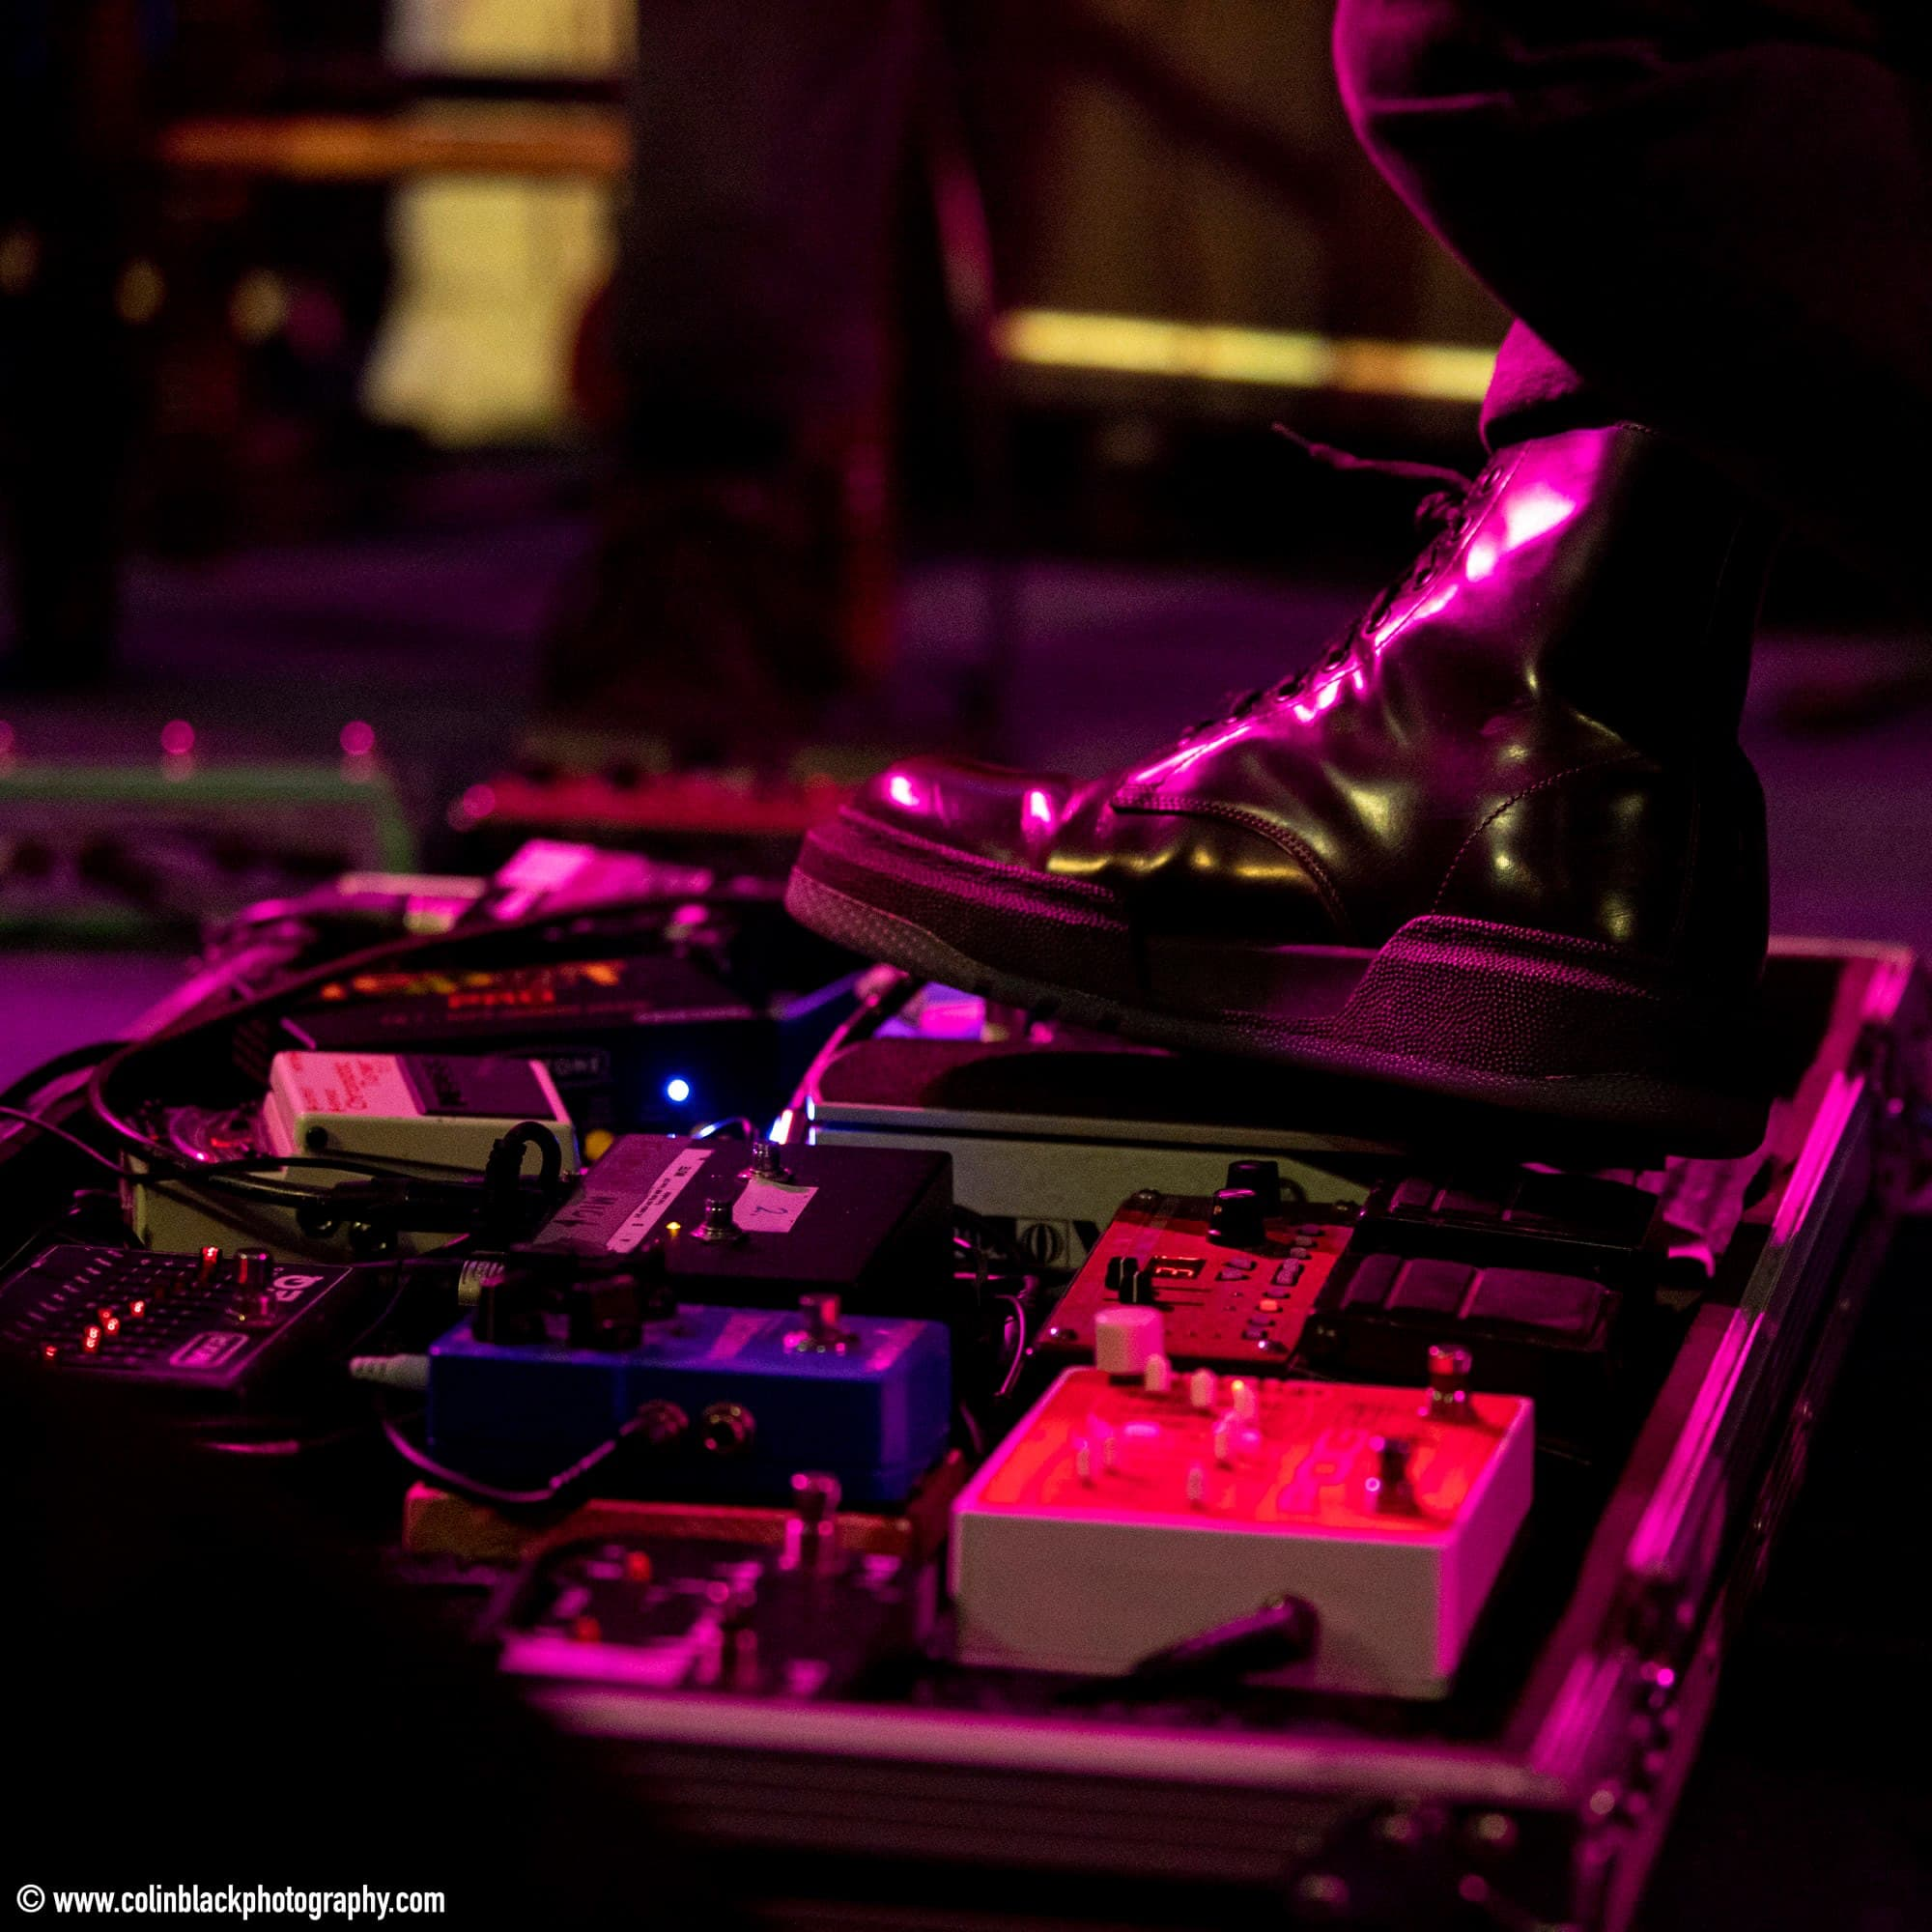 Black shoe operating pedal boards arranged on the ground